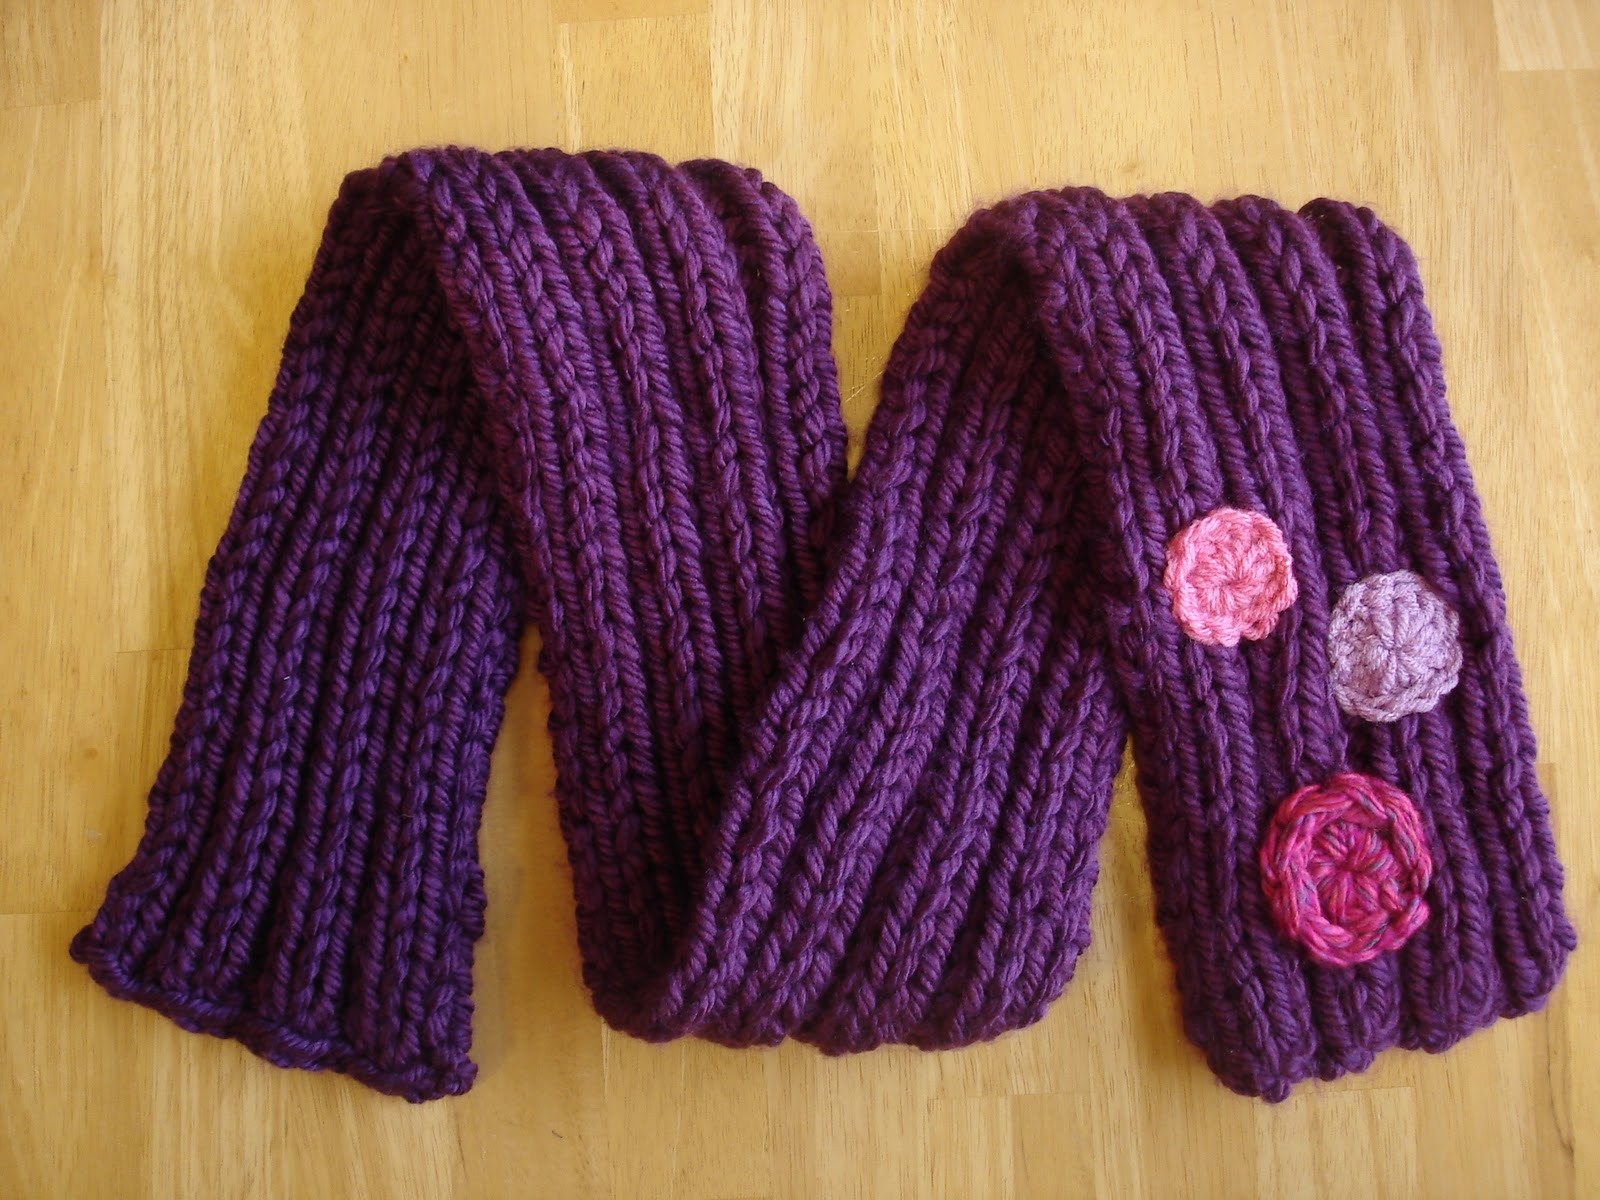 Knitting Patterns For Scarves And Hats : Fiber Flux: Free Knitting Pattern! Her Royal Highness Hat...